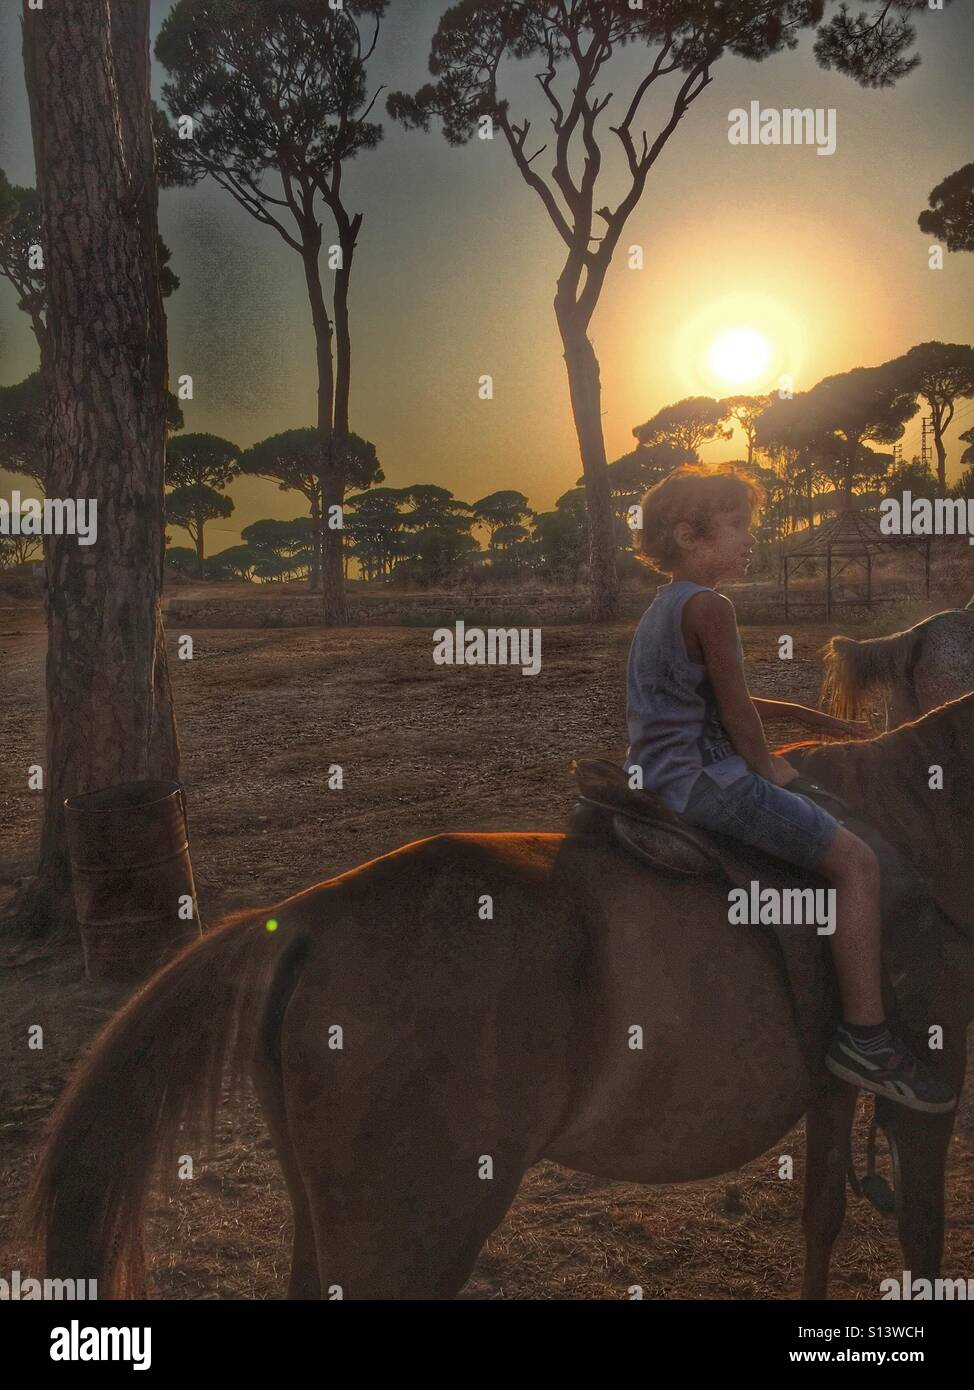 Boy kid riding a horse at sunset - Stock Image